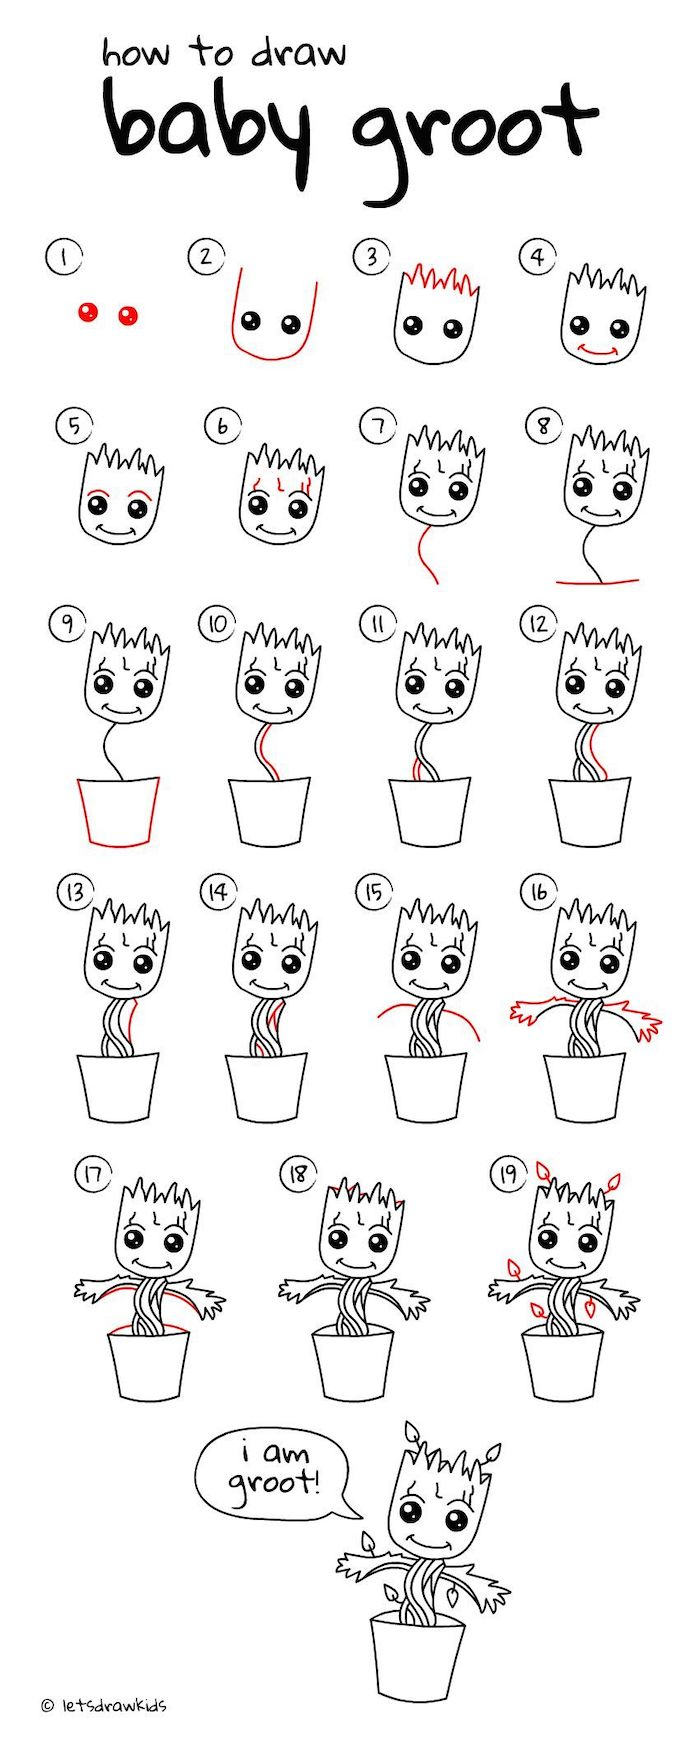 how to draw baby groot in nineteen steps, step by step diy tutorial, easy drawing ideas, black and white sketch